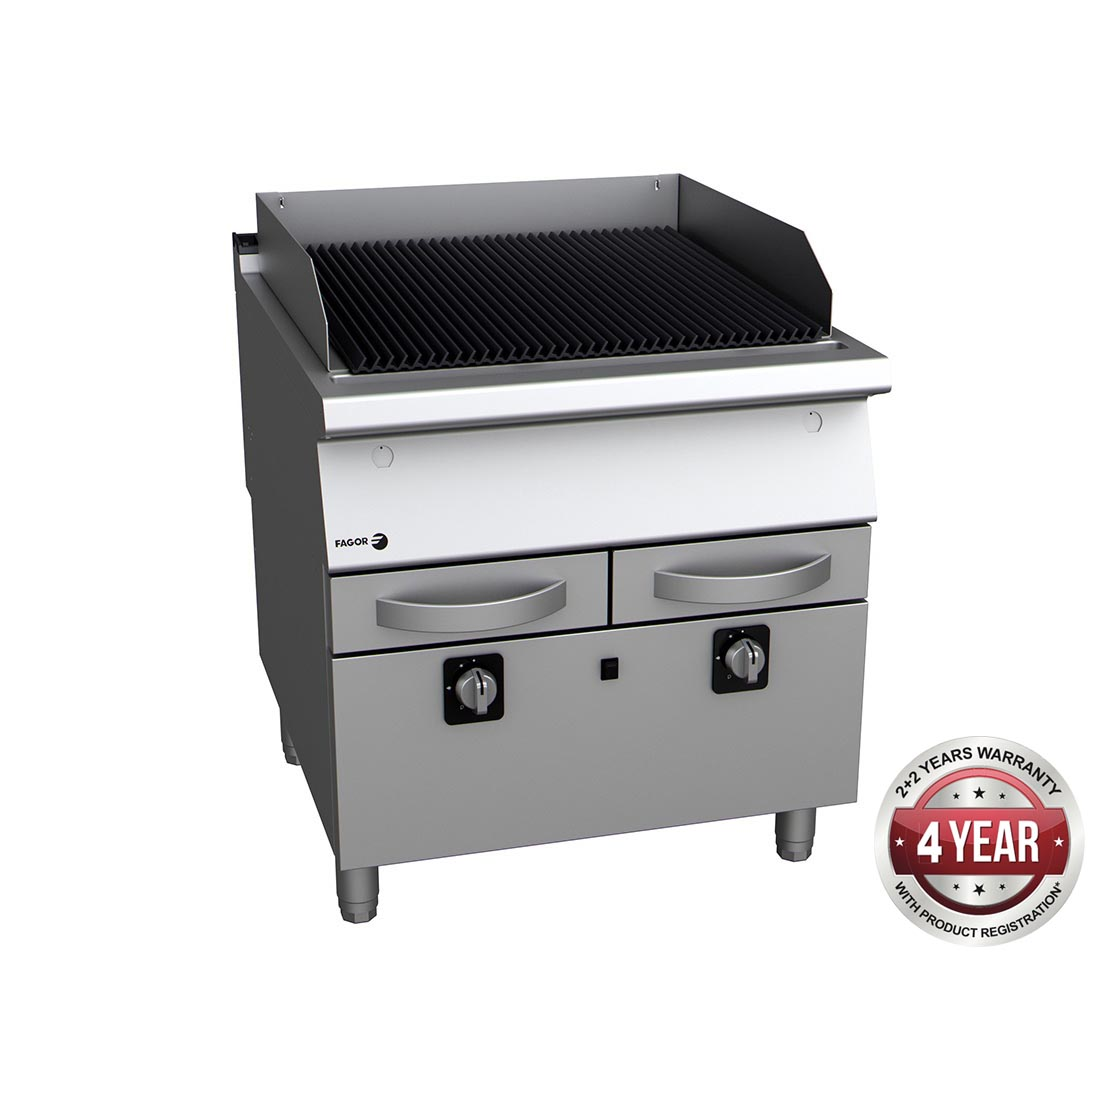 900 Series NG Chargrill - B-G9101